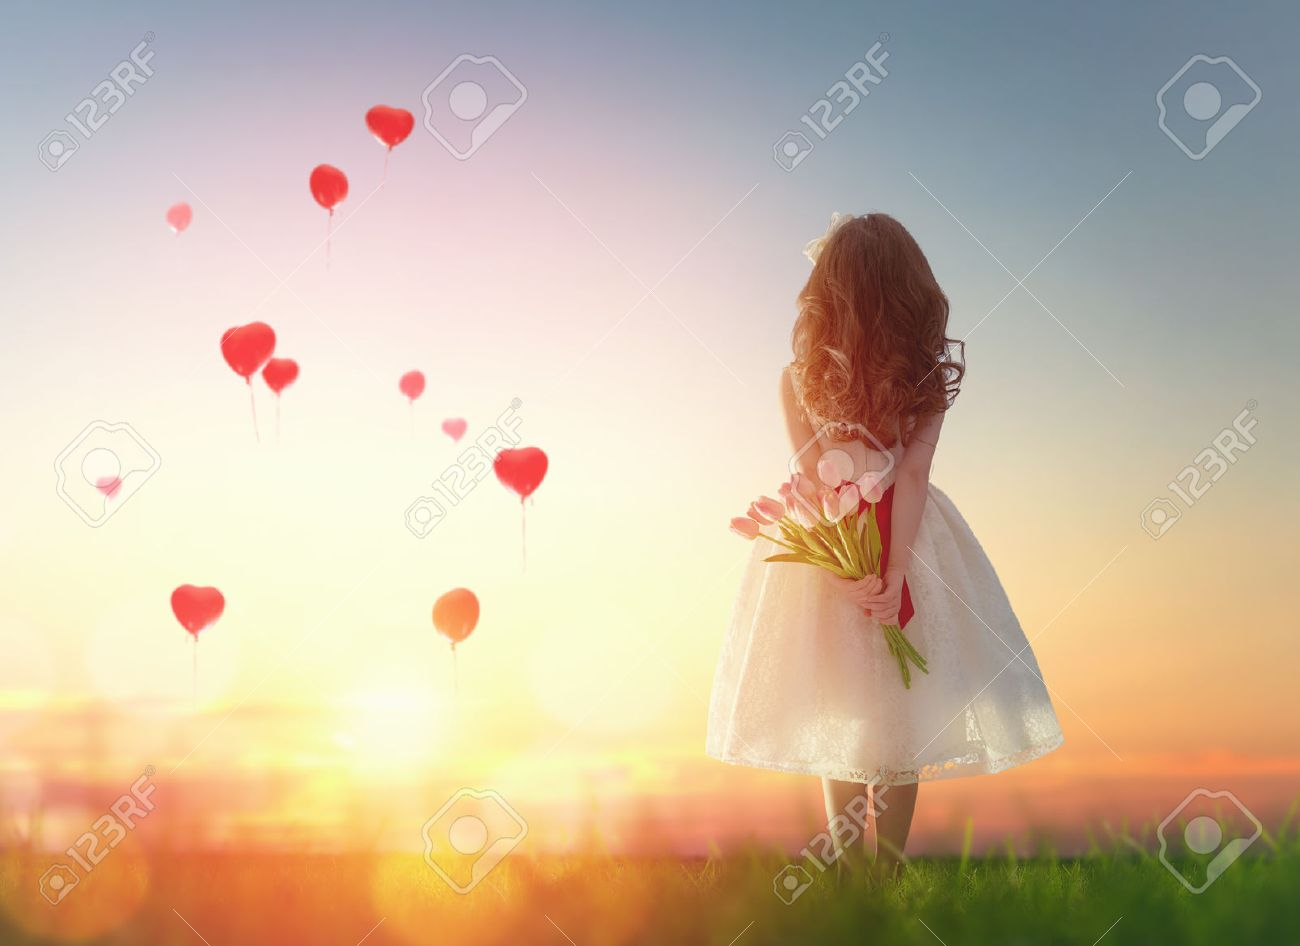 Sweet child girl looking at red balloons. Little child girl holding bouquet of flowers. Balloons in shape of heart flying in the sunset sky. Wedding, Valentine, love concept. - 50846004